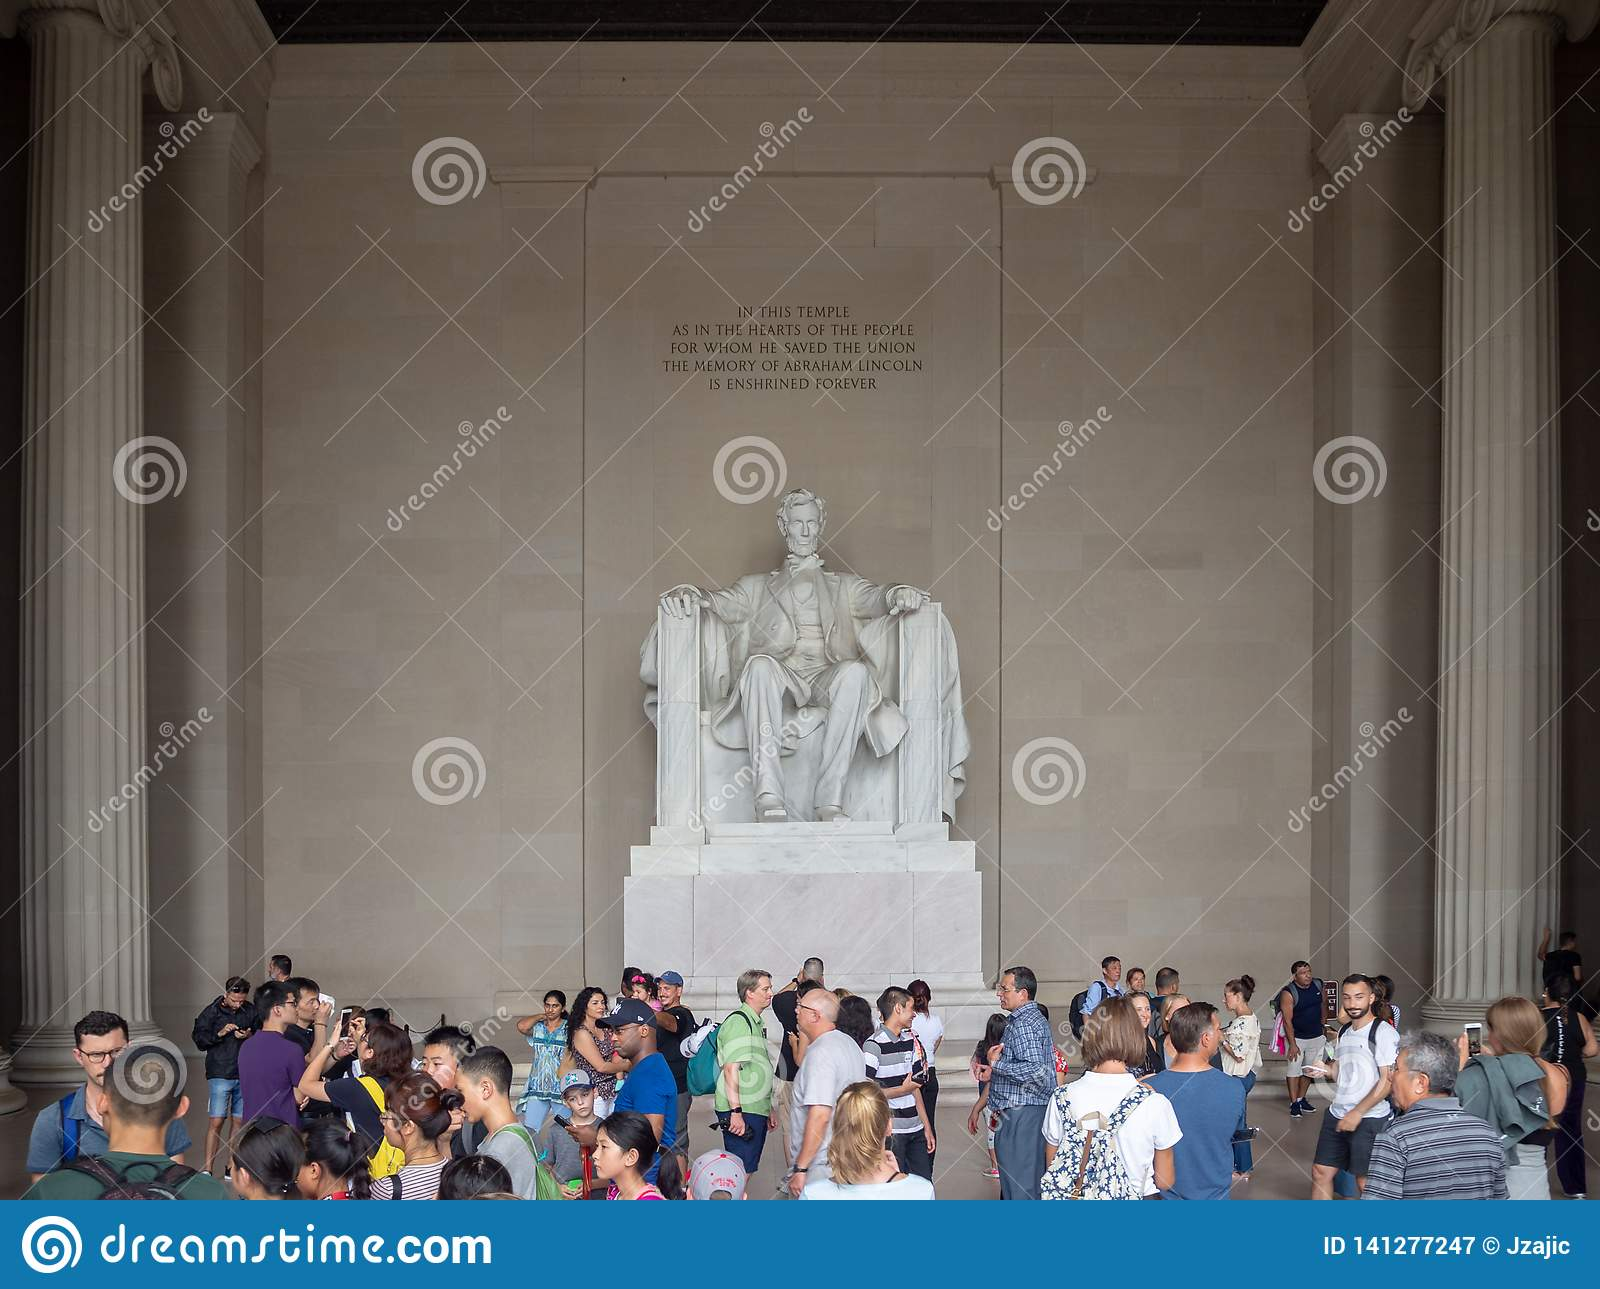 Washington DC, District of Columbia [United States US, Lincoln Memorial over Reflection pool, interior and exterior,